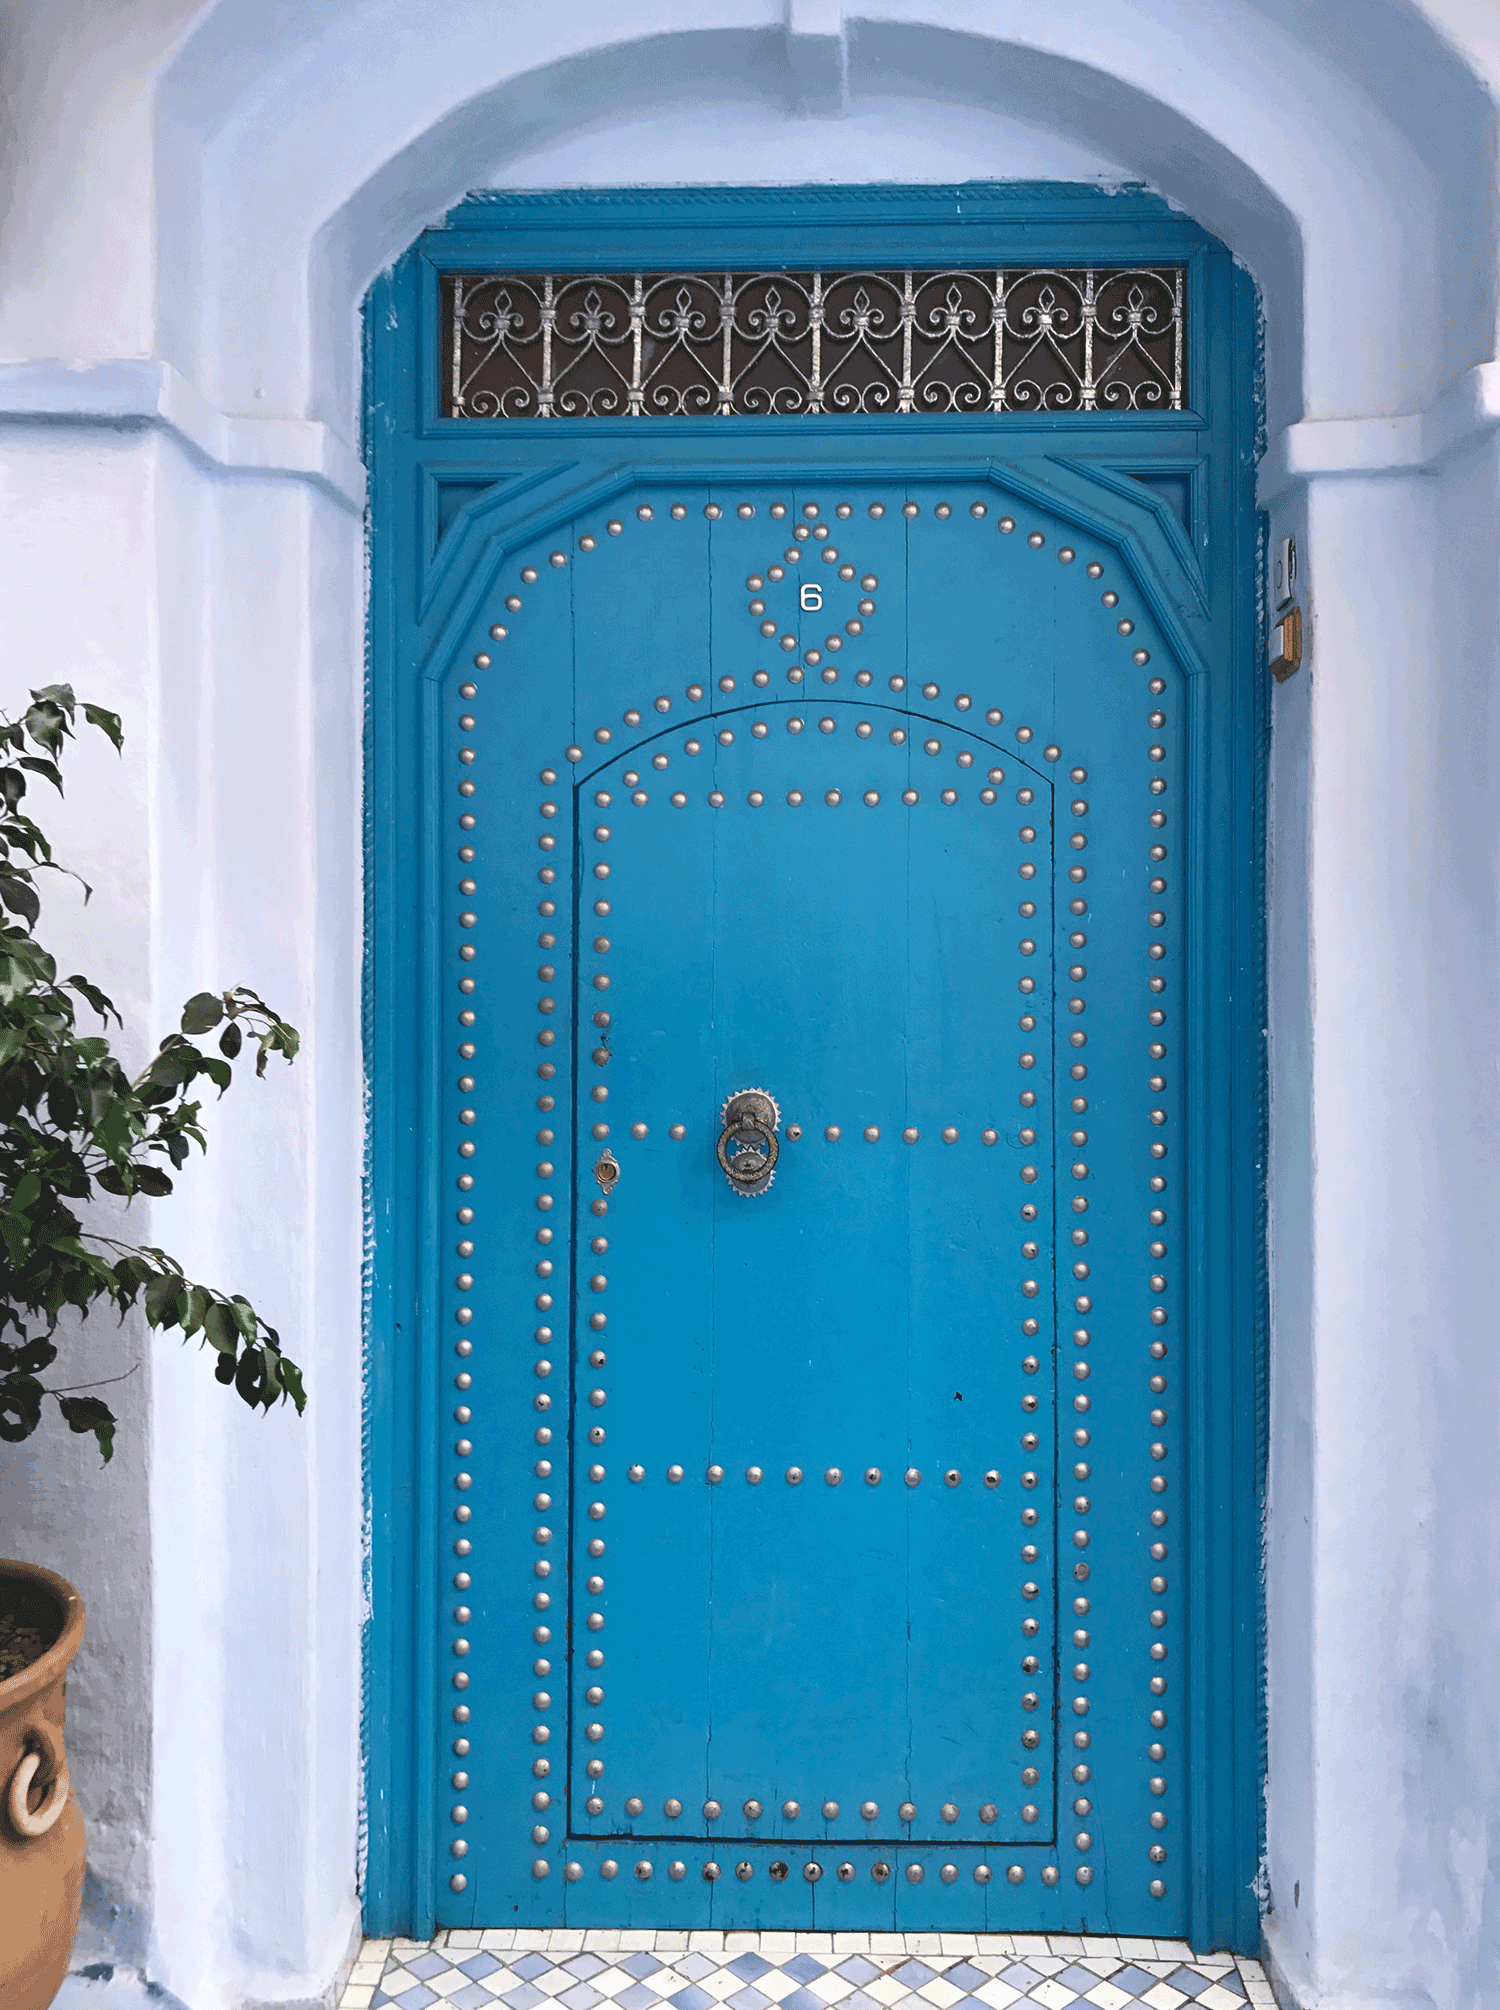 Chefchaouen-Morocco-image-blue-door-home.png